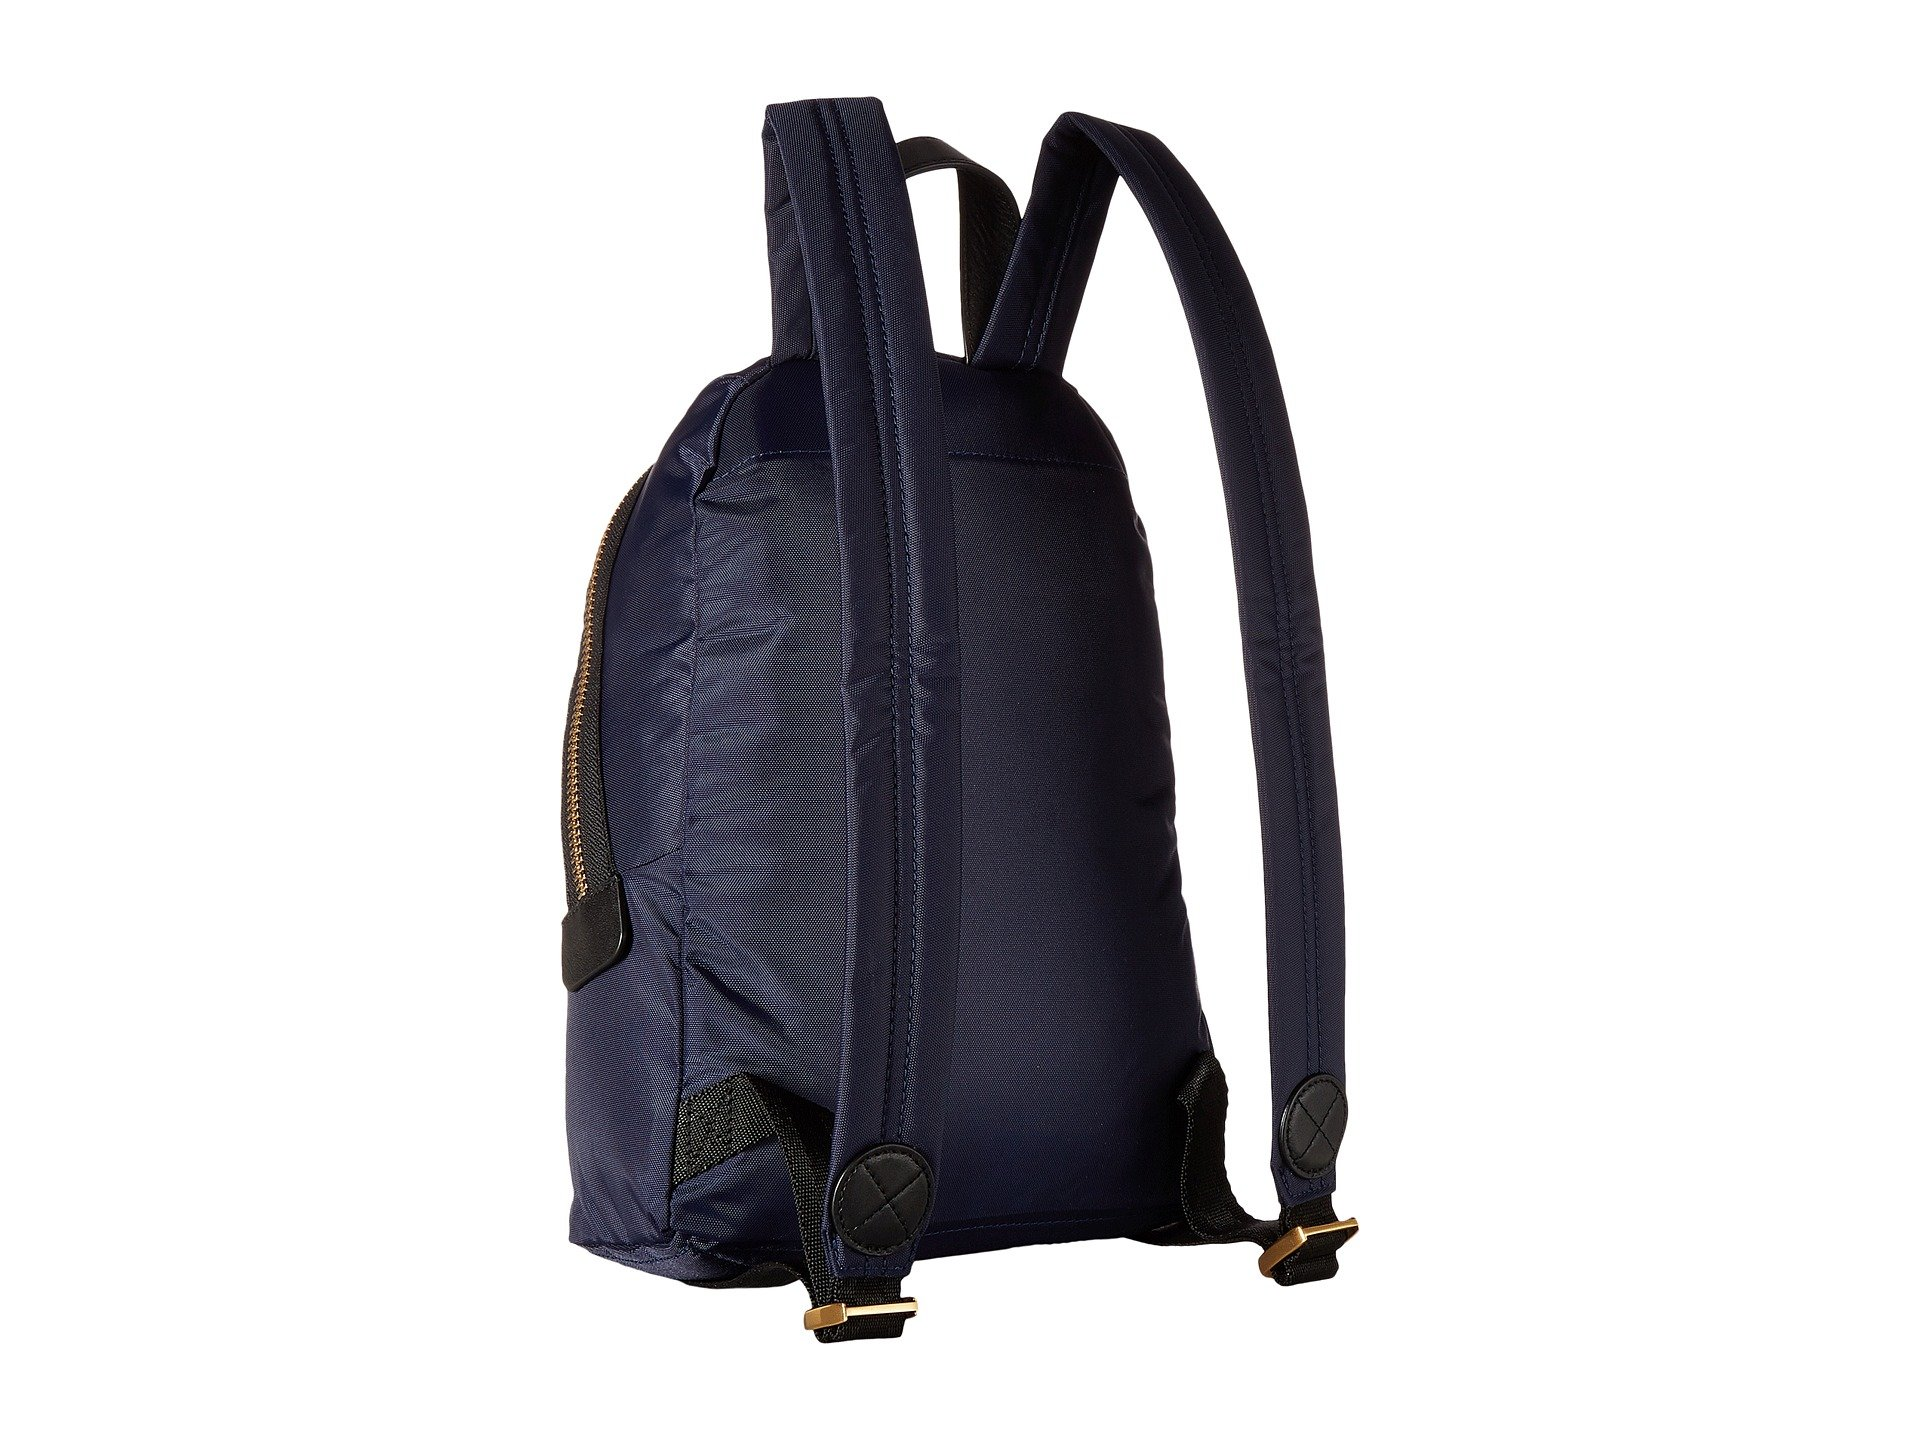 b85042e9adf9 Marc Jacobs Nylon Biker Mini Backpack at Luxury.Zappos.com